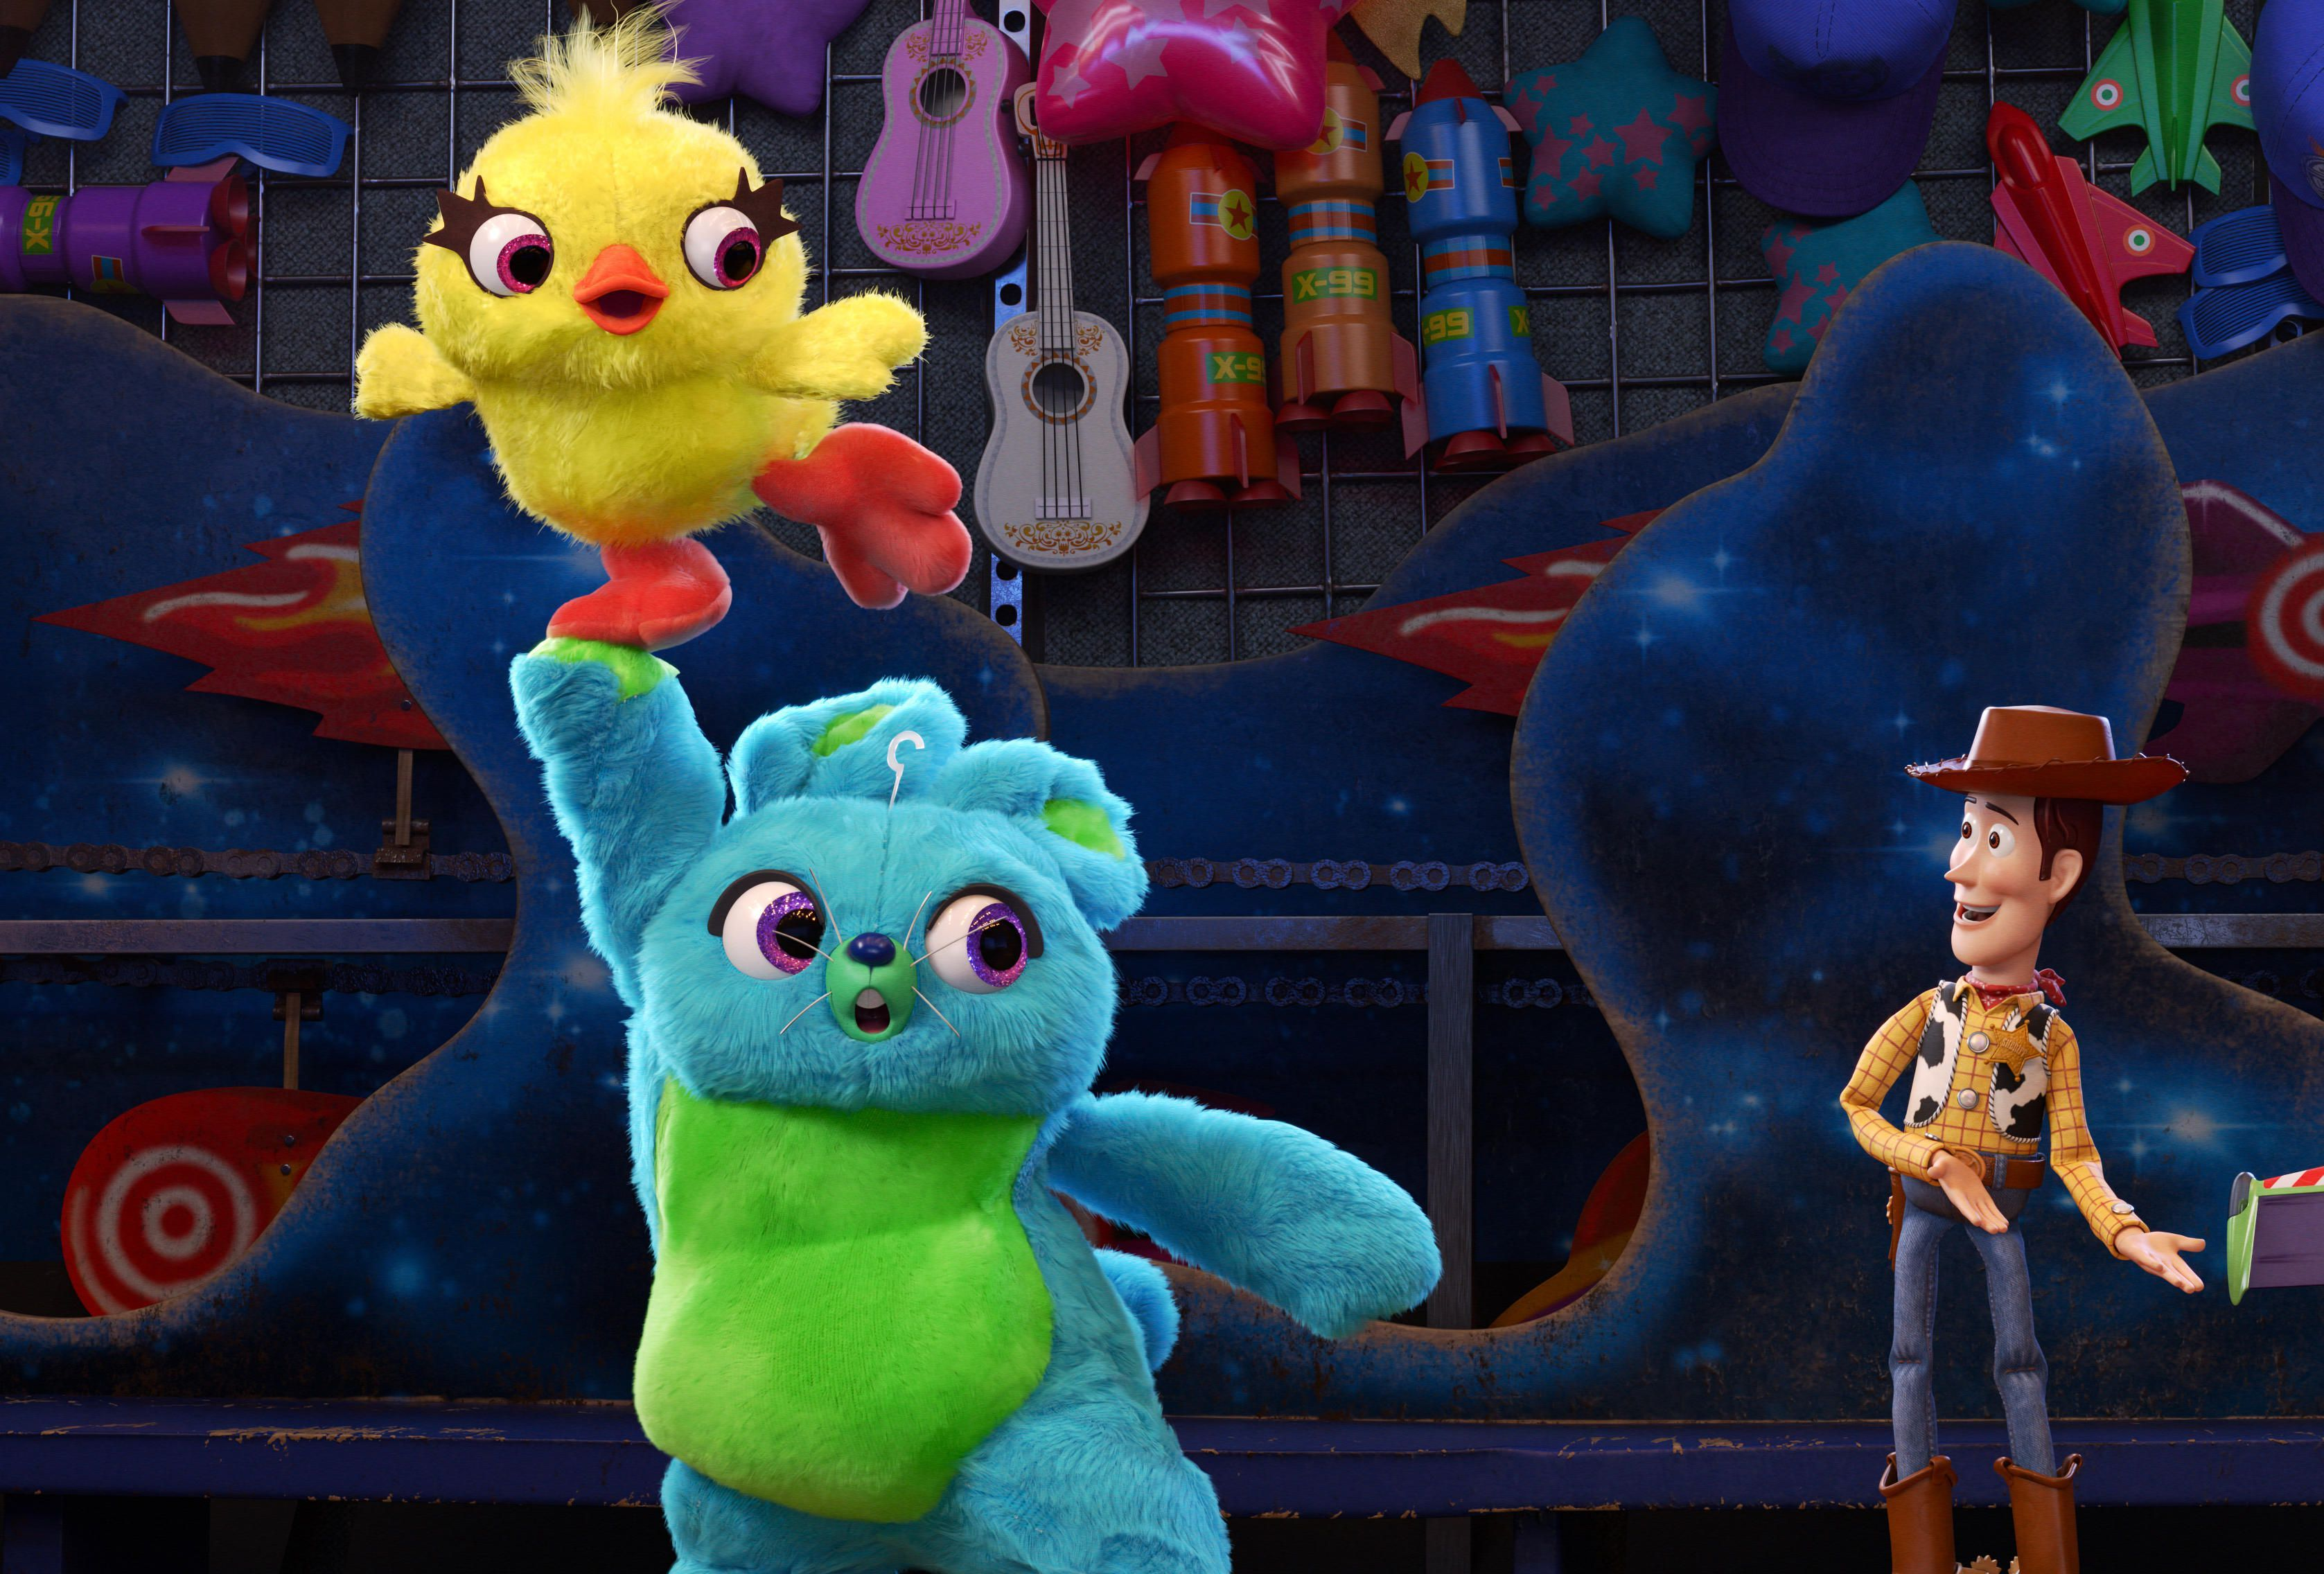 Toy Story 4 Introduces New Characters And Emotional Plot Toy Story